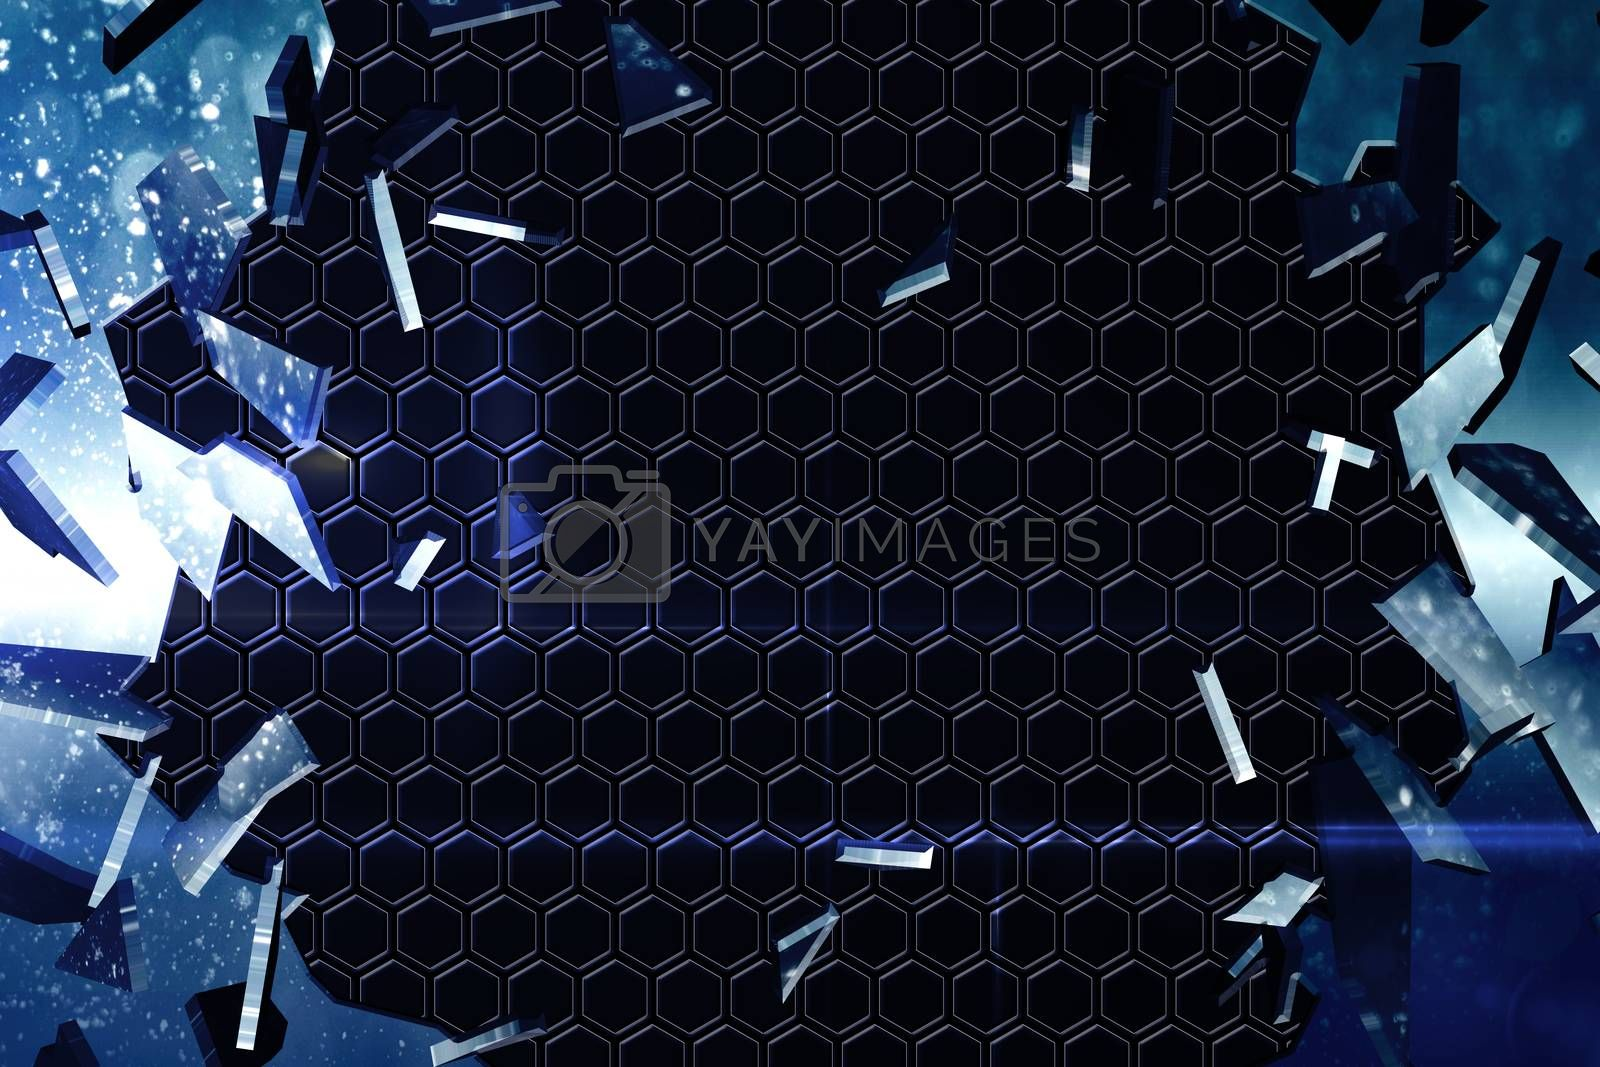 Royalty free image of Glass shattering to show dark pattern by Wavebreakmedia